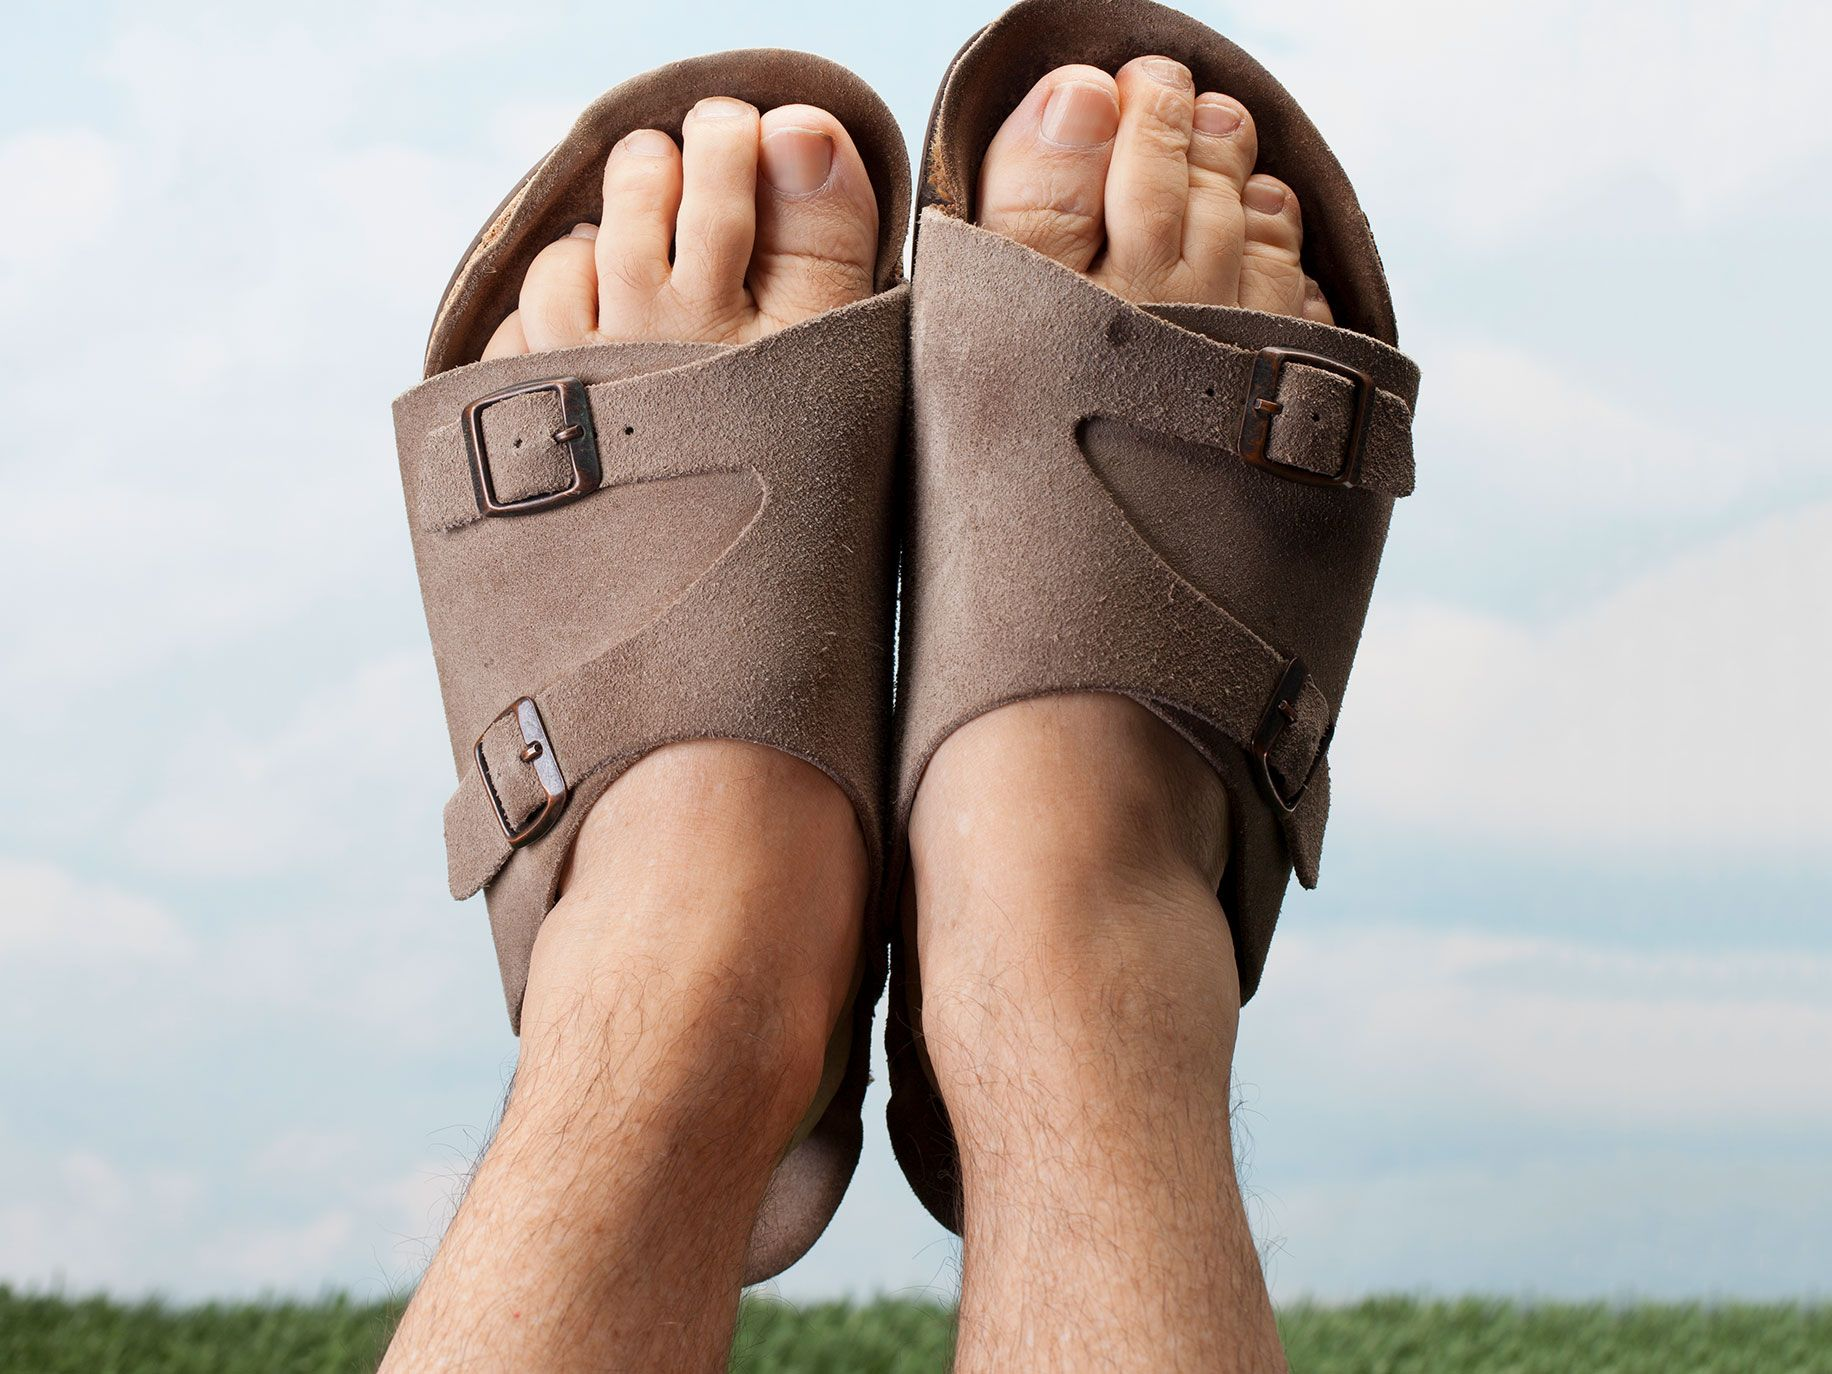 Birkenstocks are the product (and namesake) of a German shoe company.